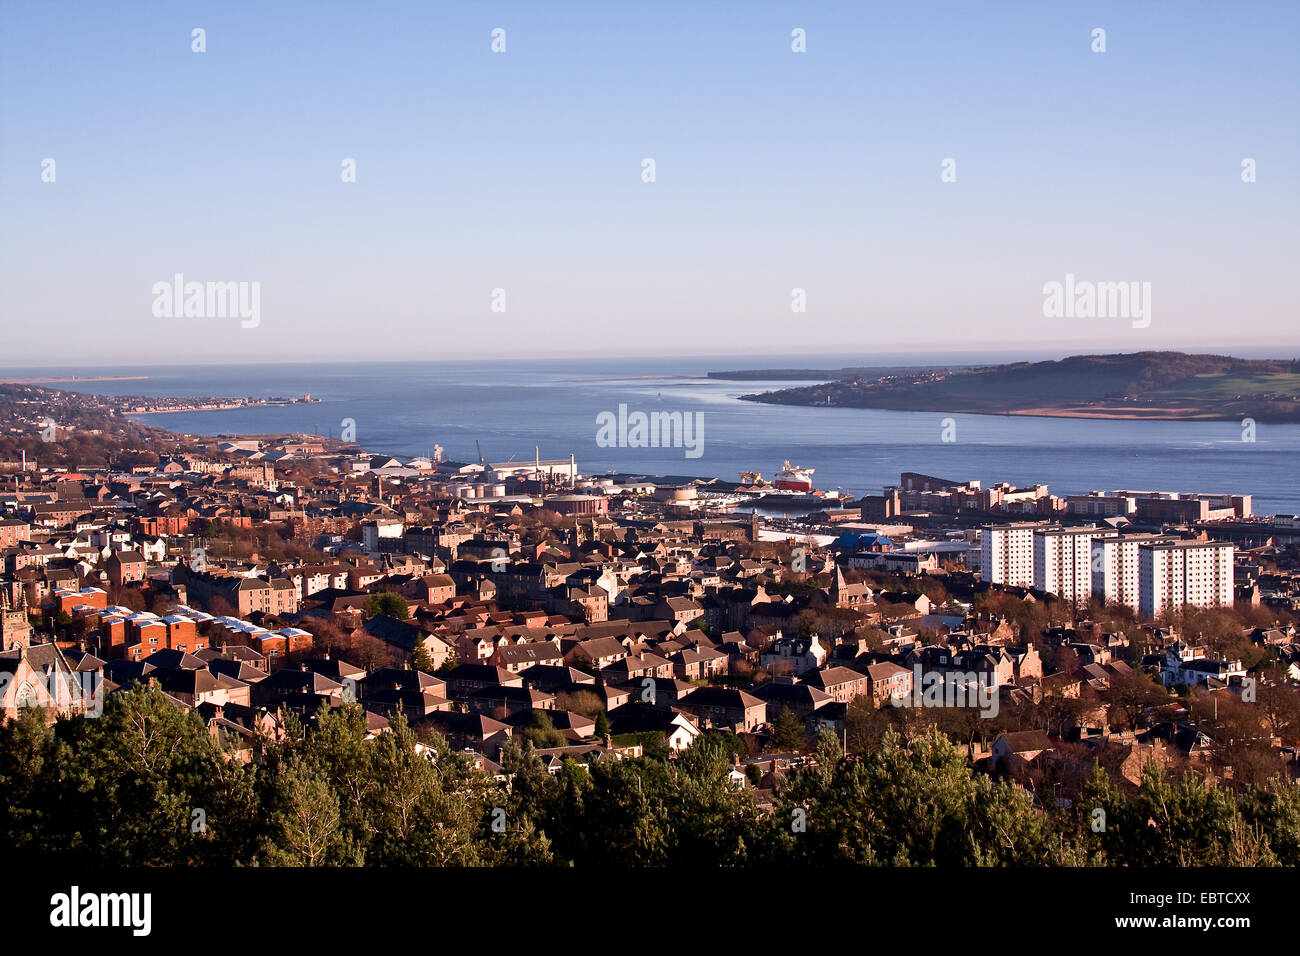 Landscape view of the River Tay Estuary and Dundee City in early Winter Sunshine, UK - Stock Image